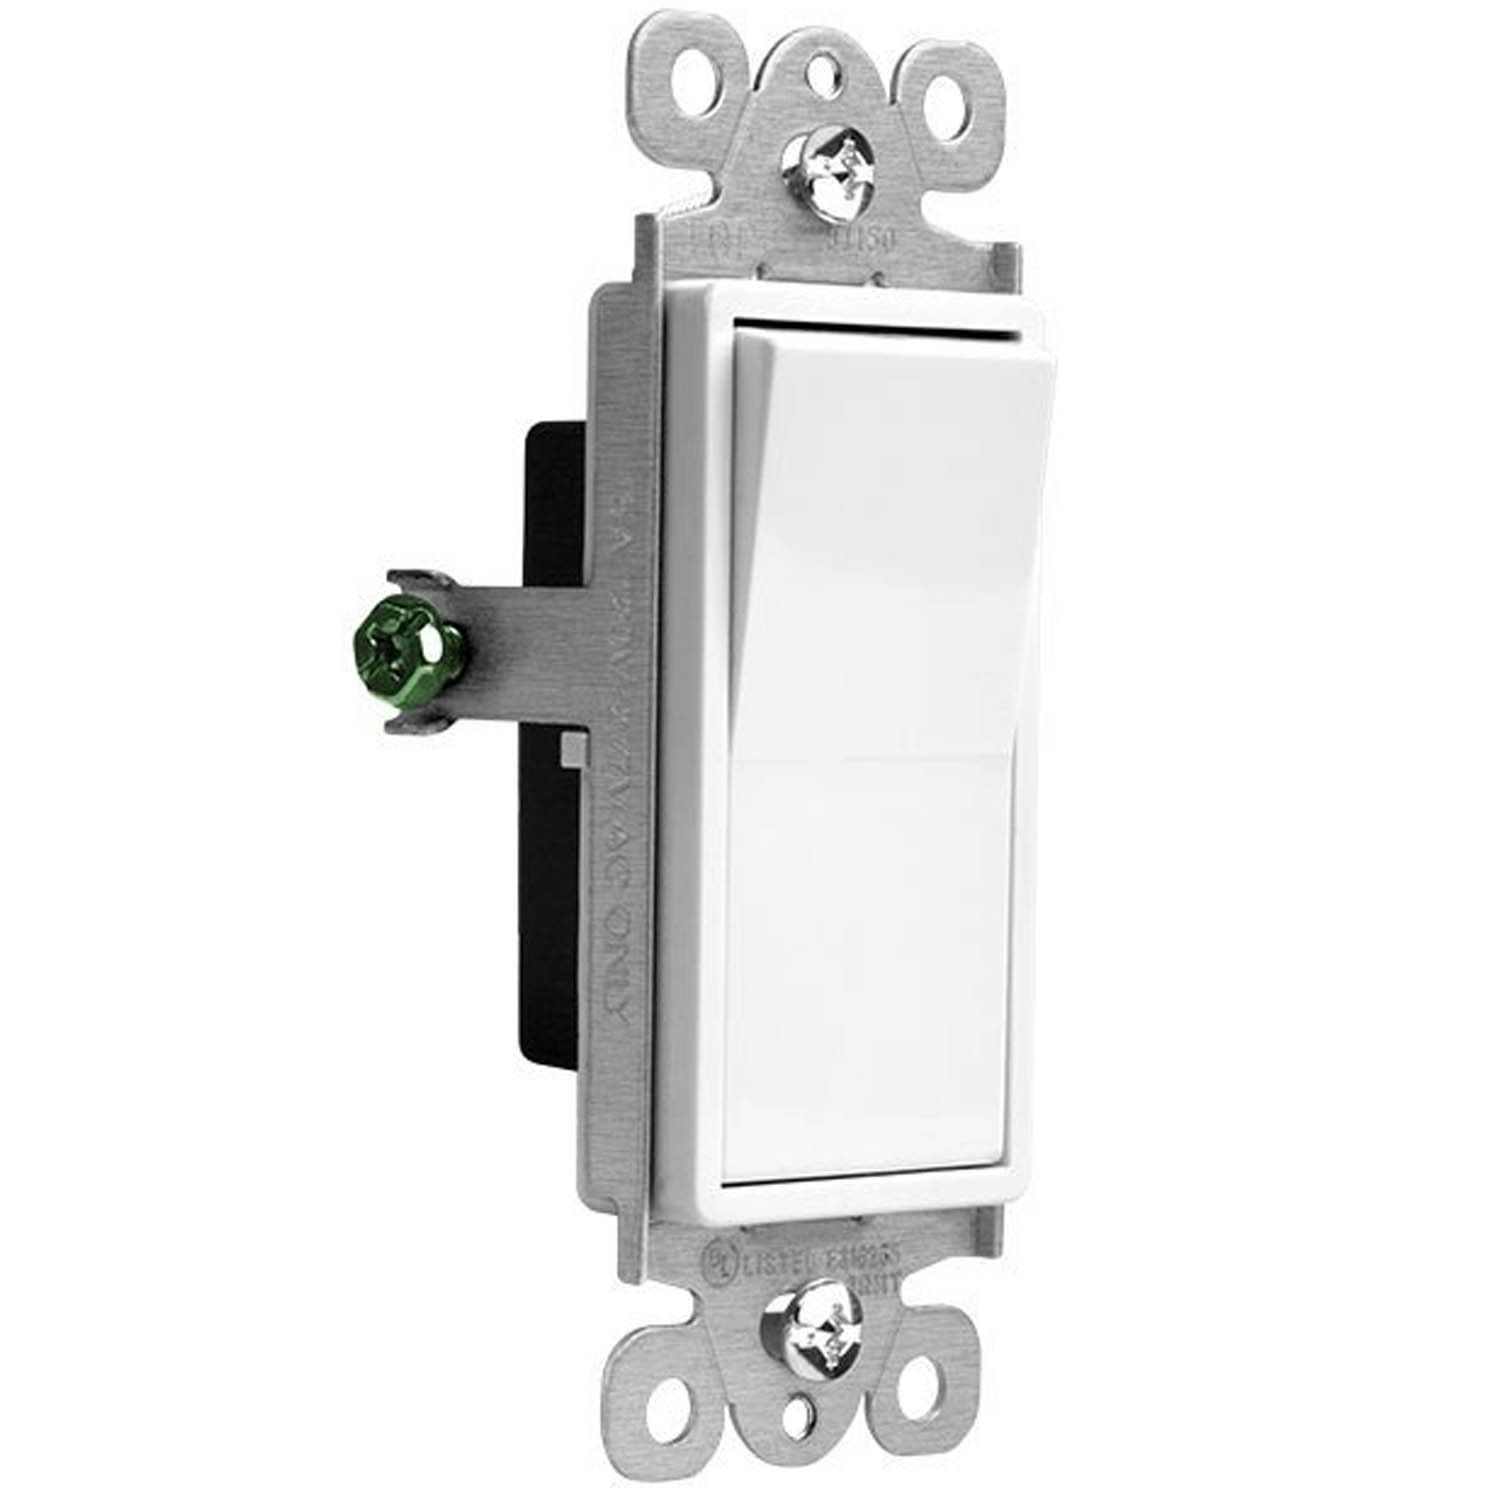 Enerlites 3way On Off Rocker Light Switch 93150w 15 Amp 120v 277v Paddle Ac Single Pole 3 Wire Grounding Screw R Light Switch Plates On Wall Wire Installation